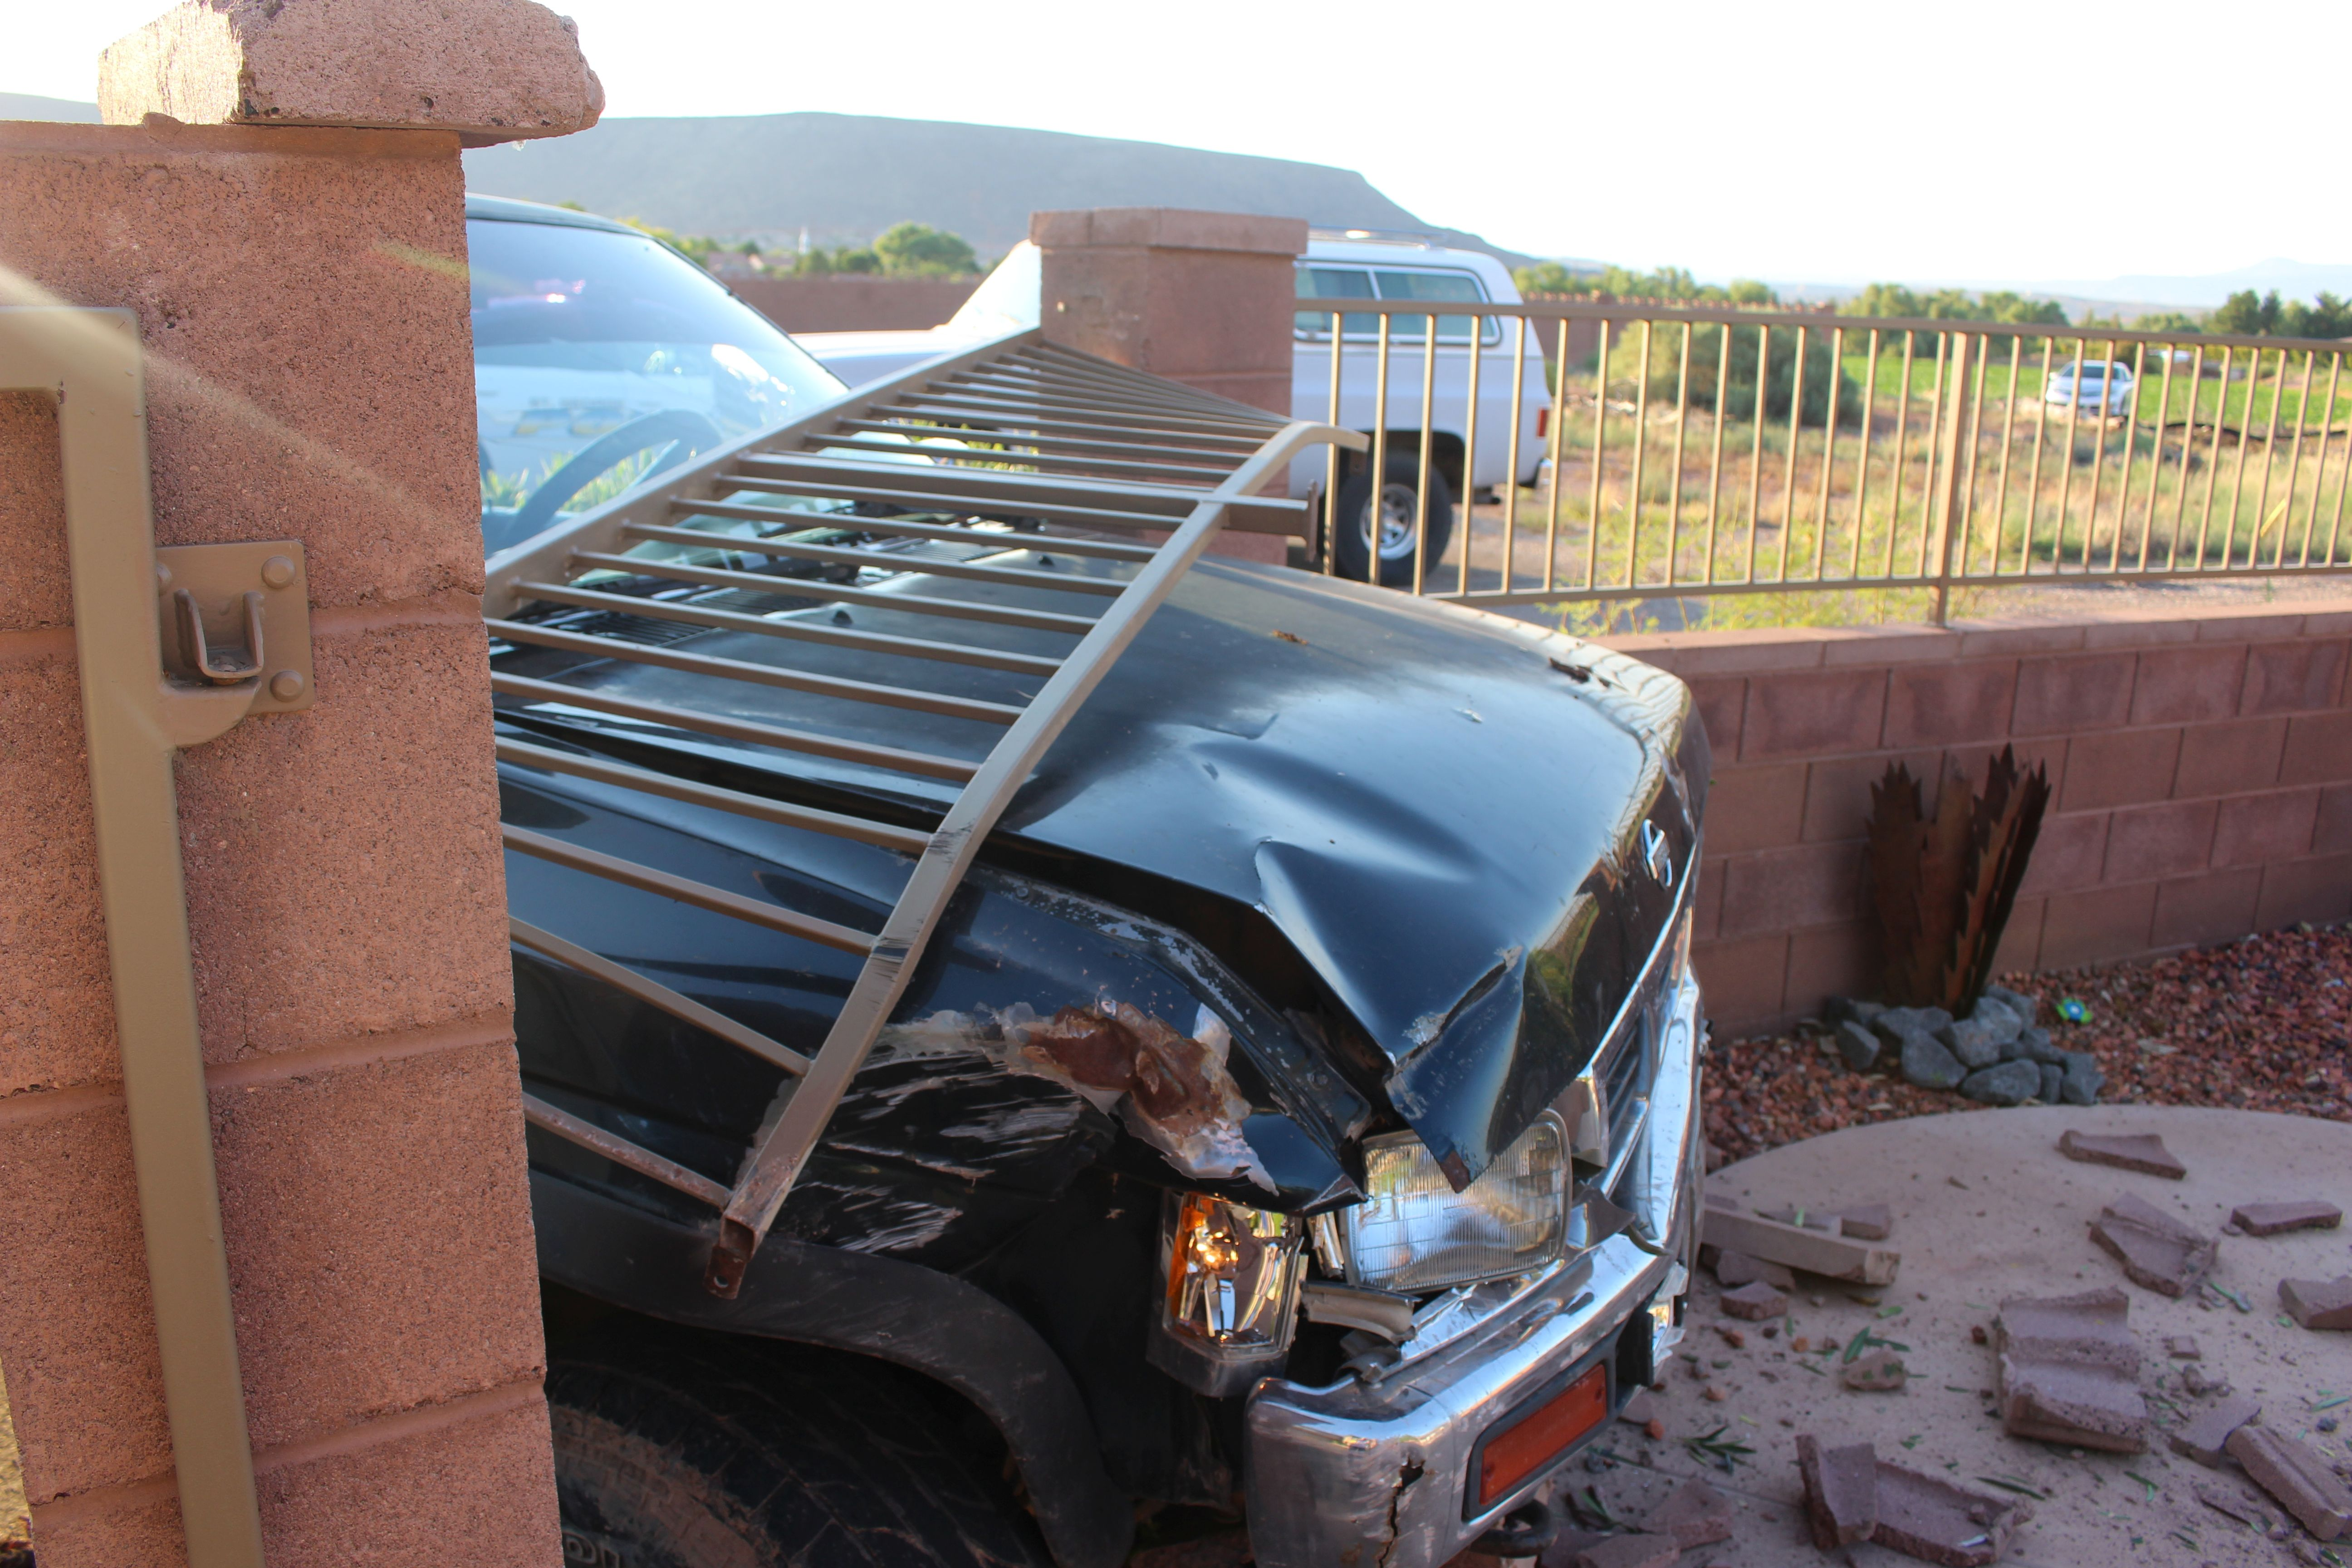 A compact pickup truck crashed into a fence surrounding a swimming pool Saturday. The driver was arrested for DUI, among other things. St. George, Utah, Aug. 20, 2016 | Photo by Ric Wayman, St. George News